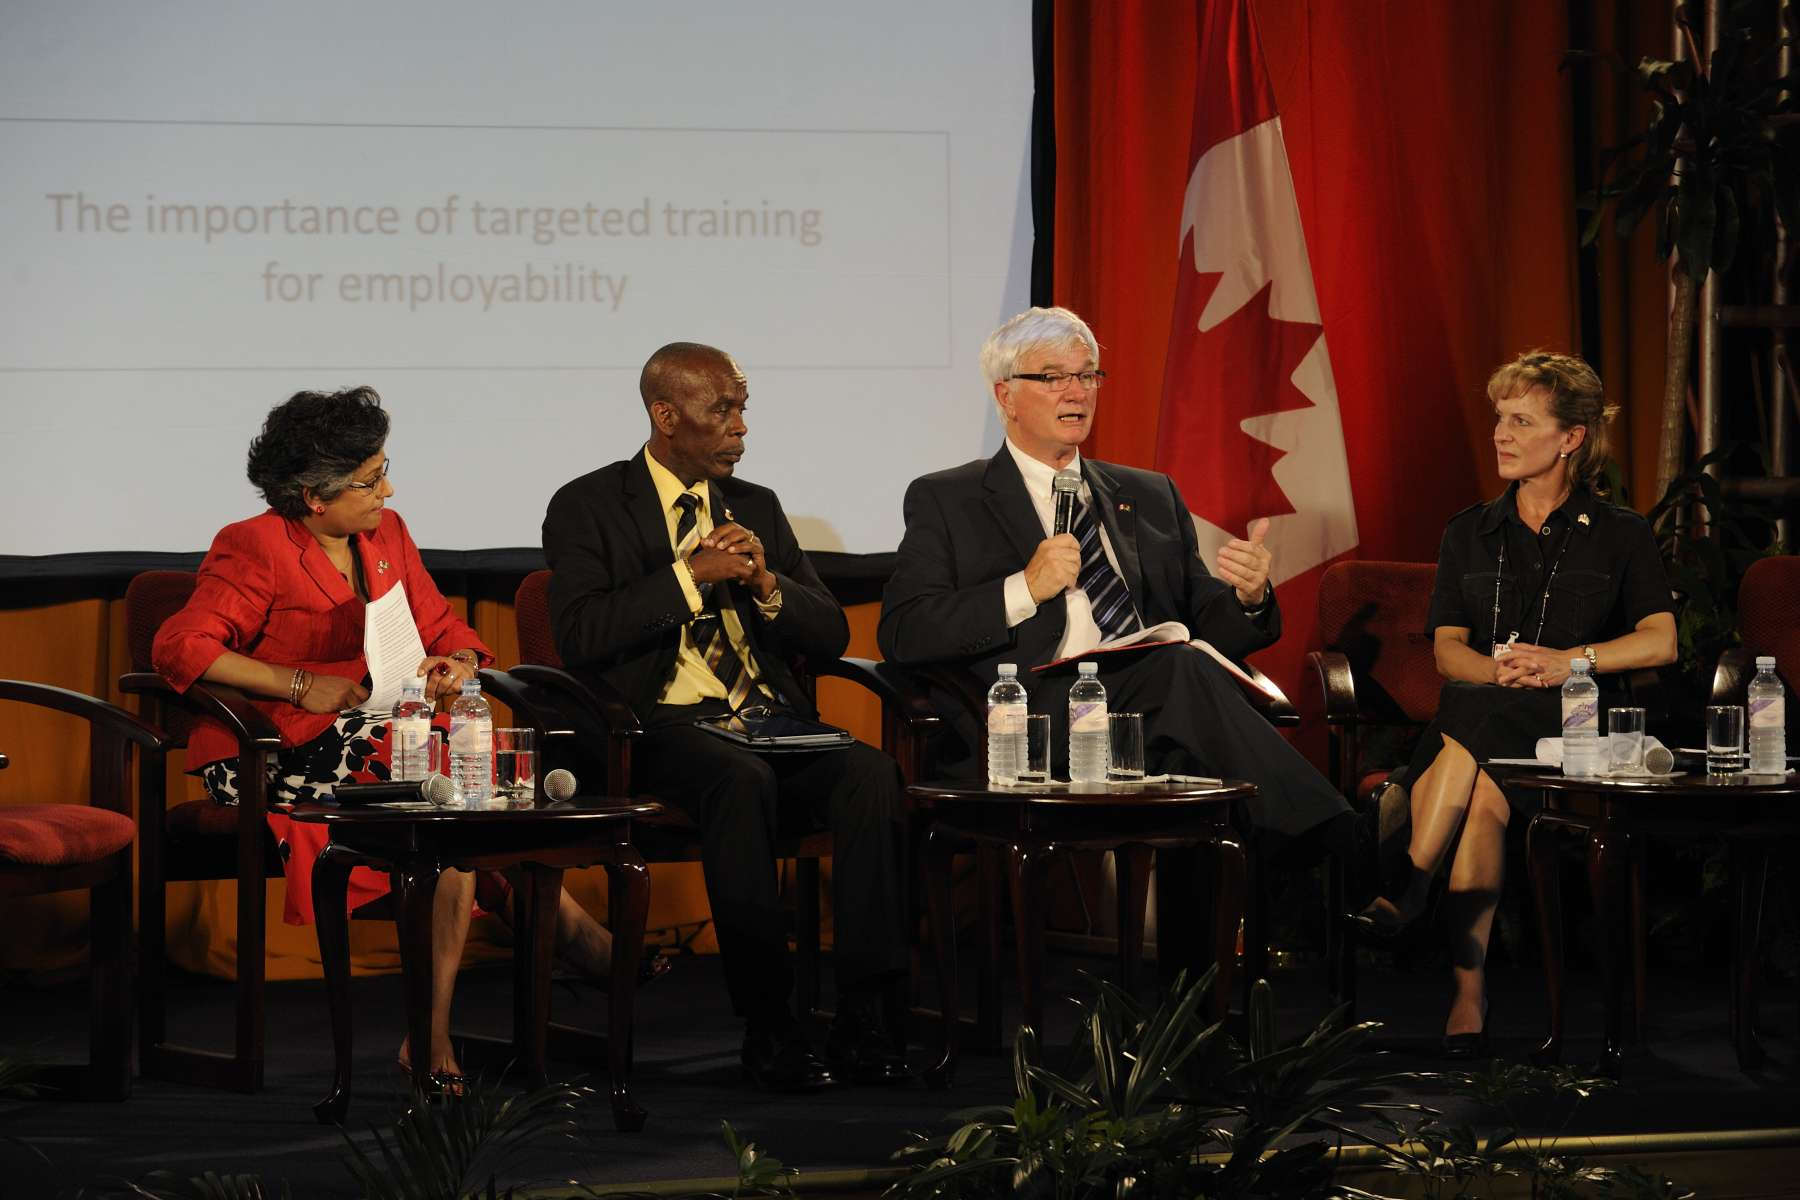 Canadian delegate James Knight also took part in the discussion.